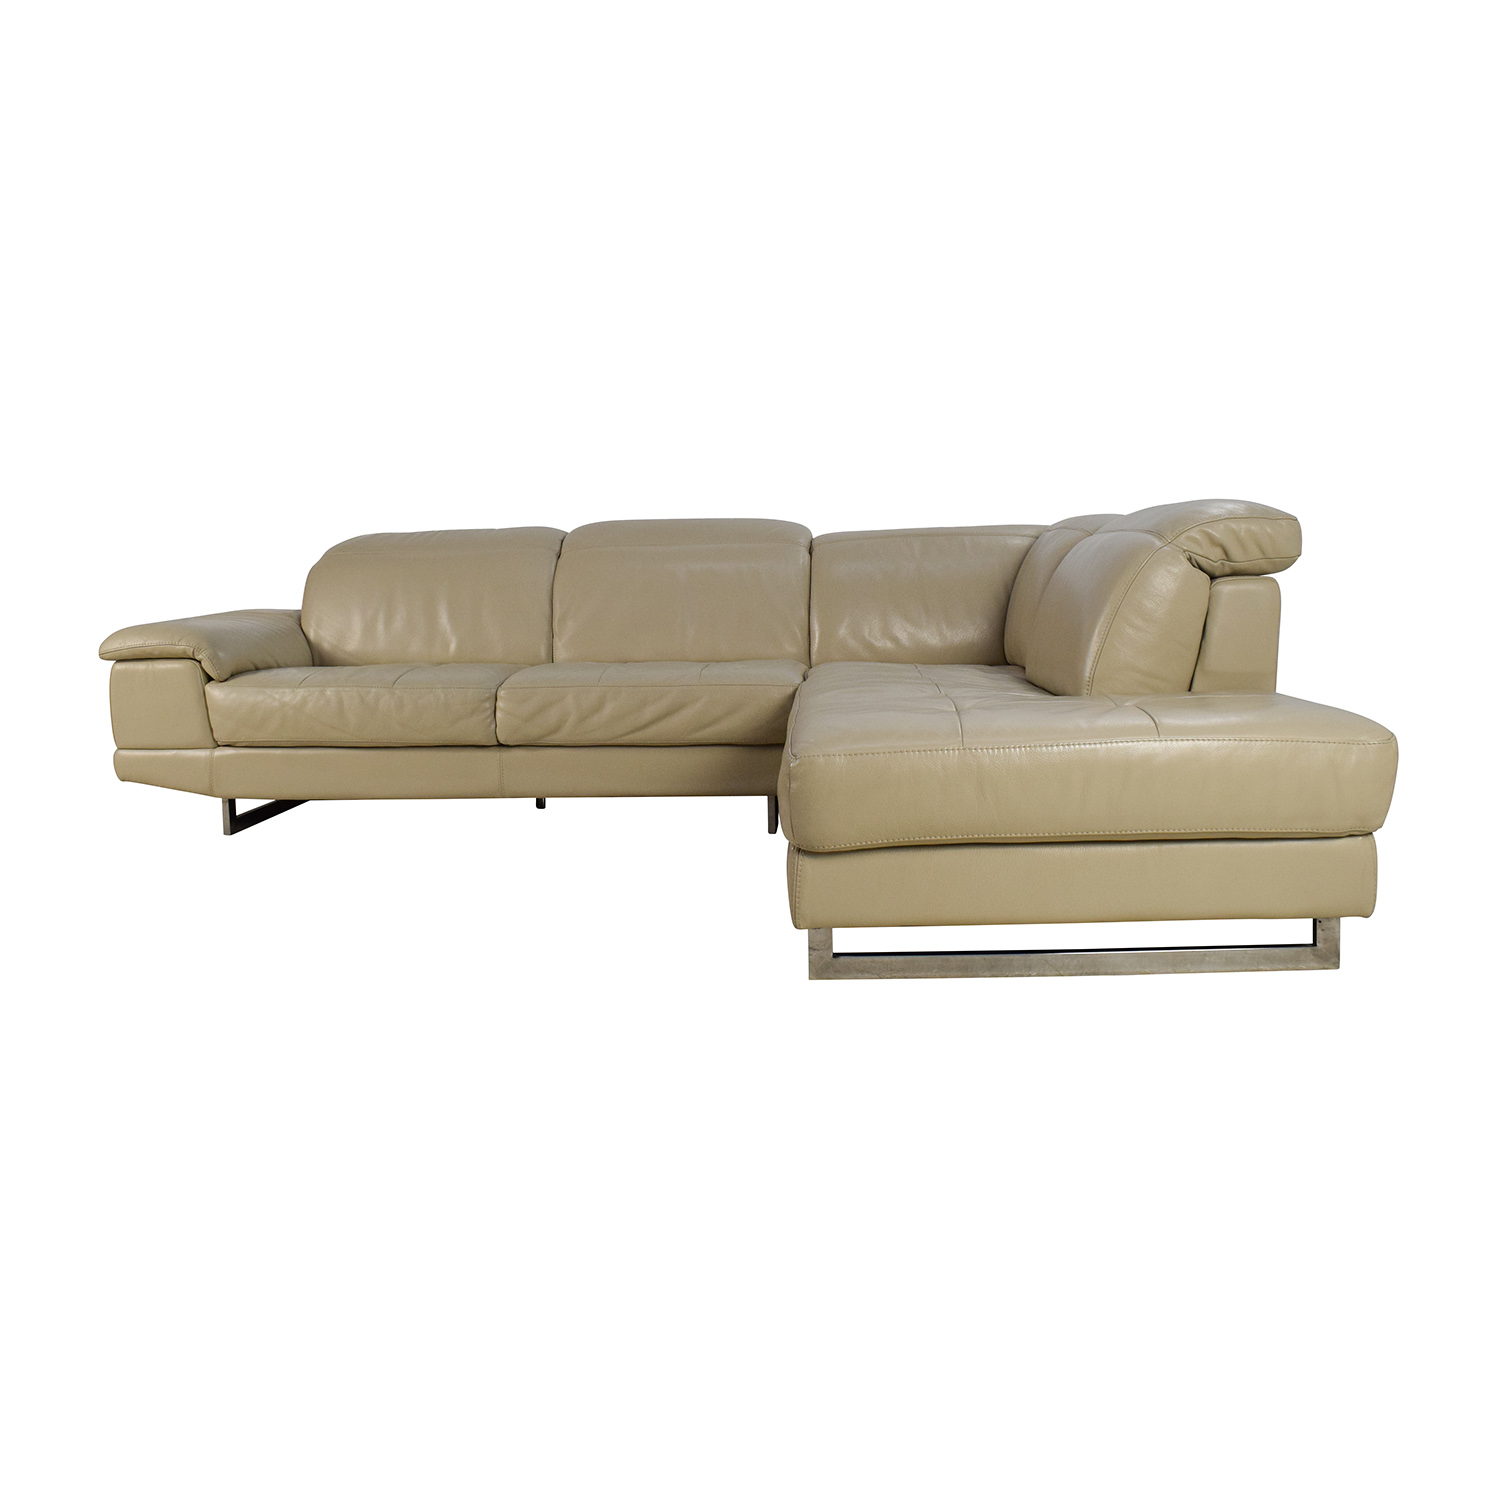 83% OFF - Beige Italian Leather Couch with Adjustable Headrests / Sofas